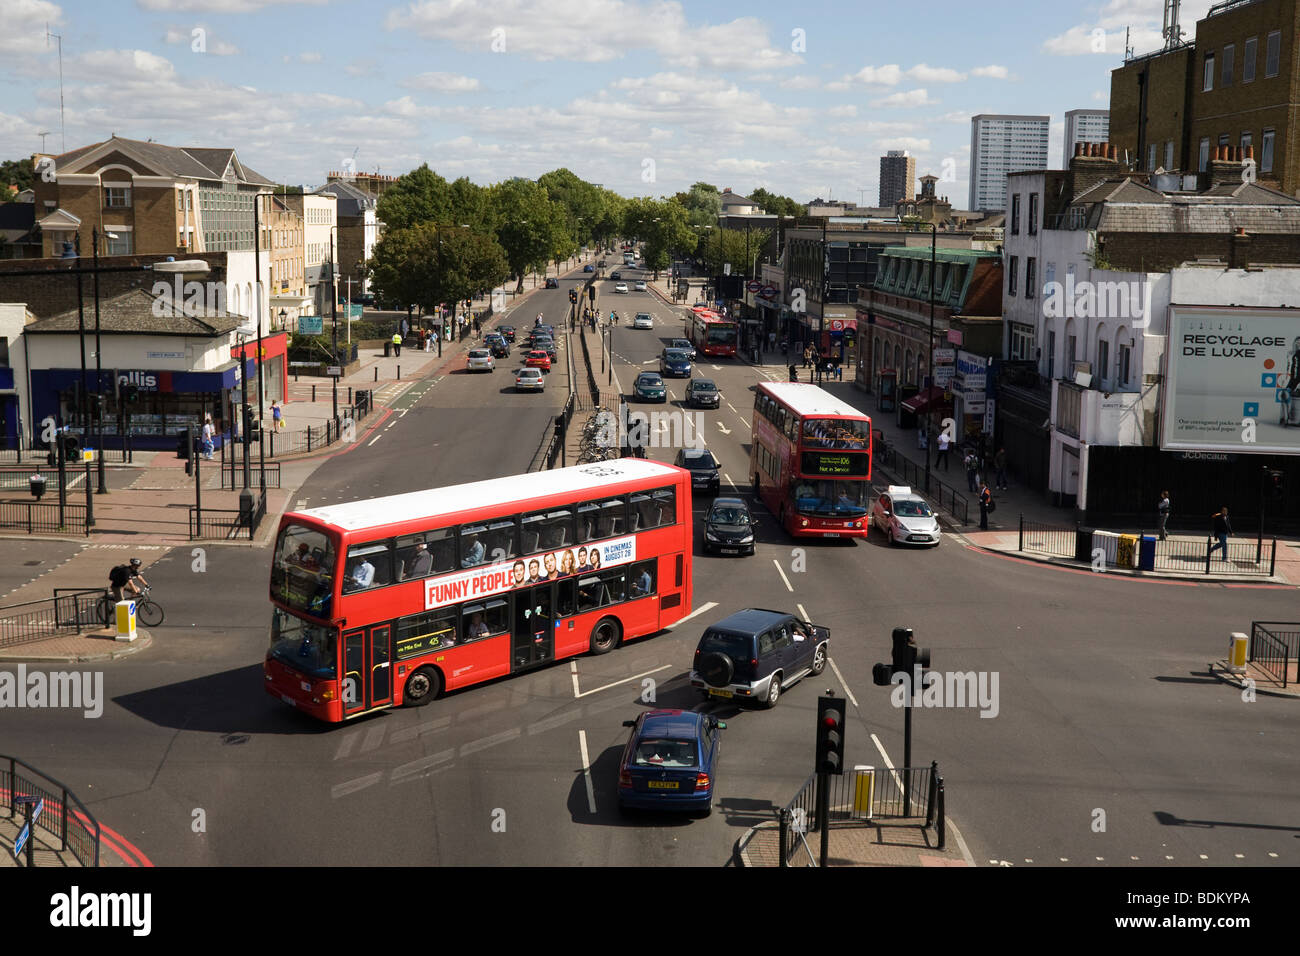 Mile End Road Junction from 'Mile End Park' ' London Borough of Tower Hamlets' Tower Hamlets London - Stock Image